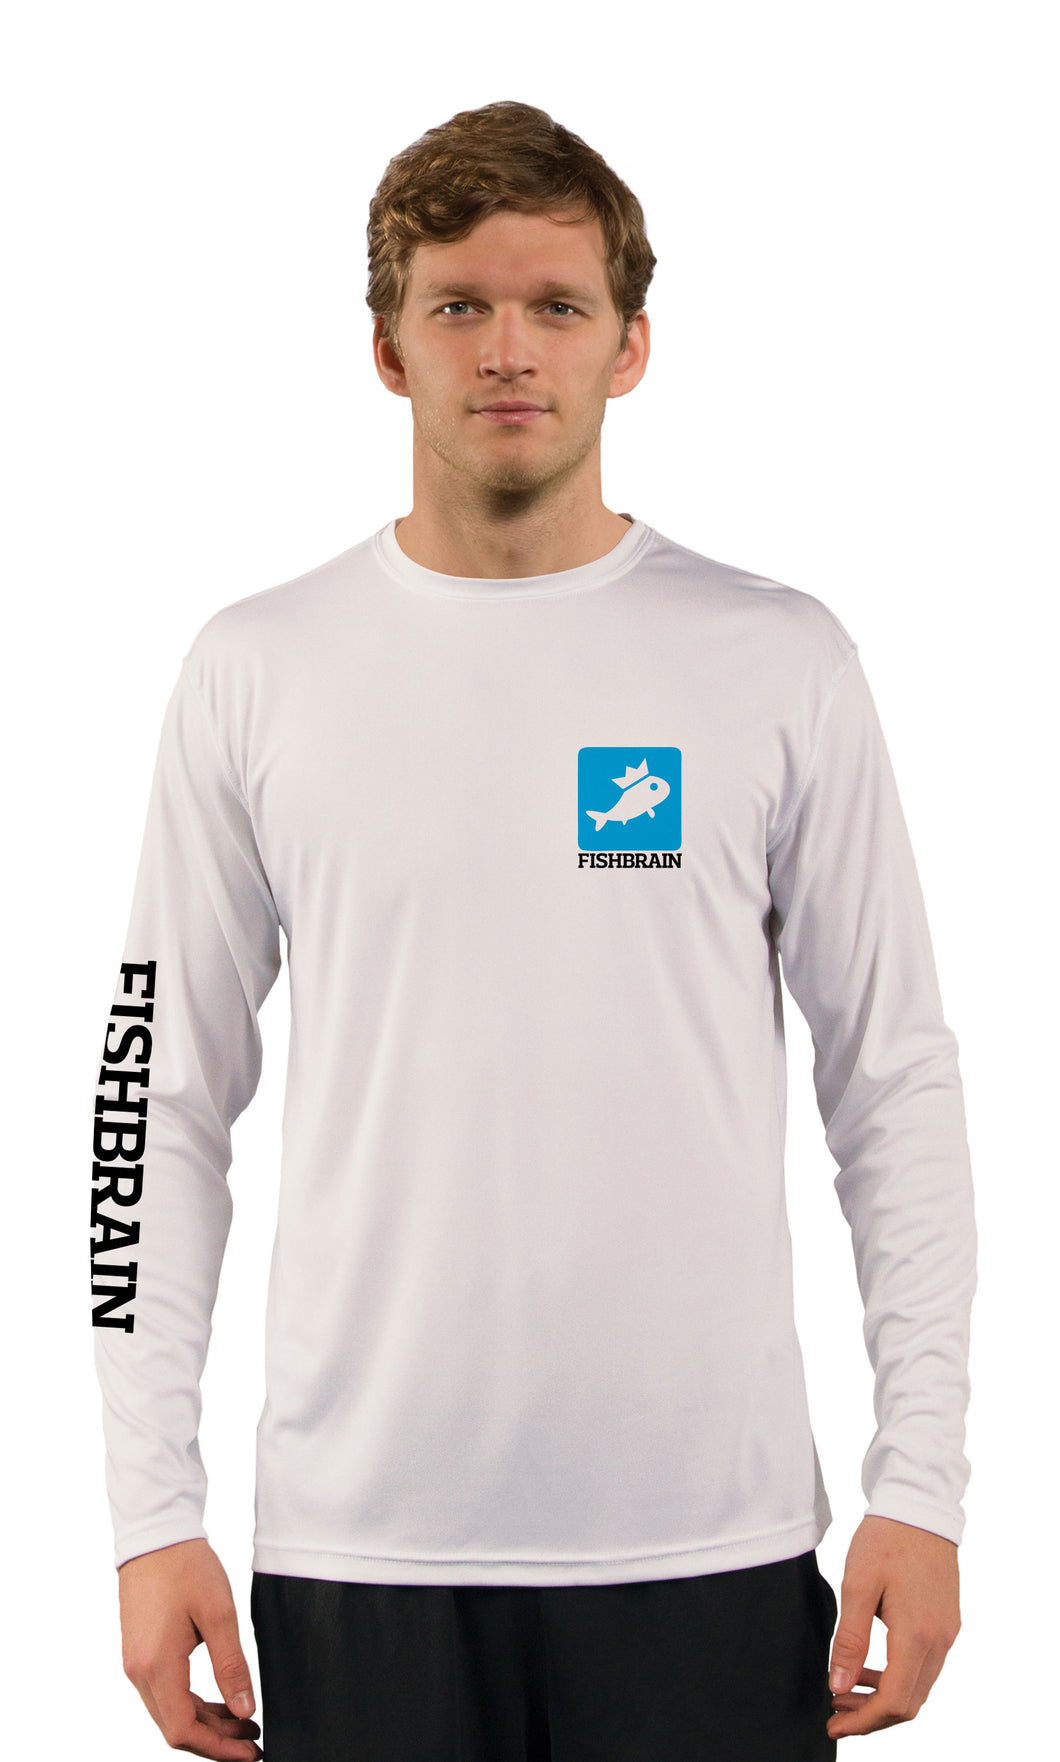 Men's Long-Sleeve Shirt - White